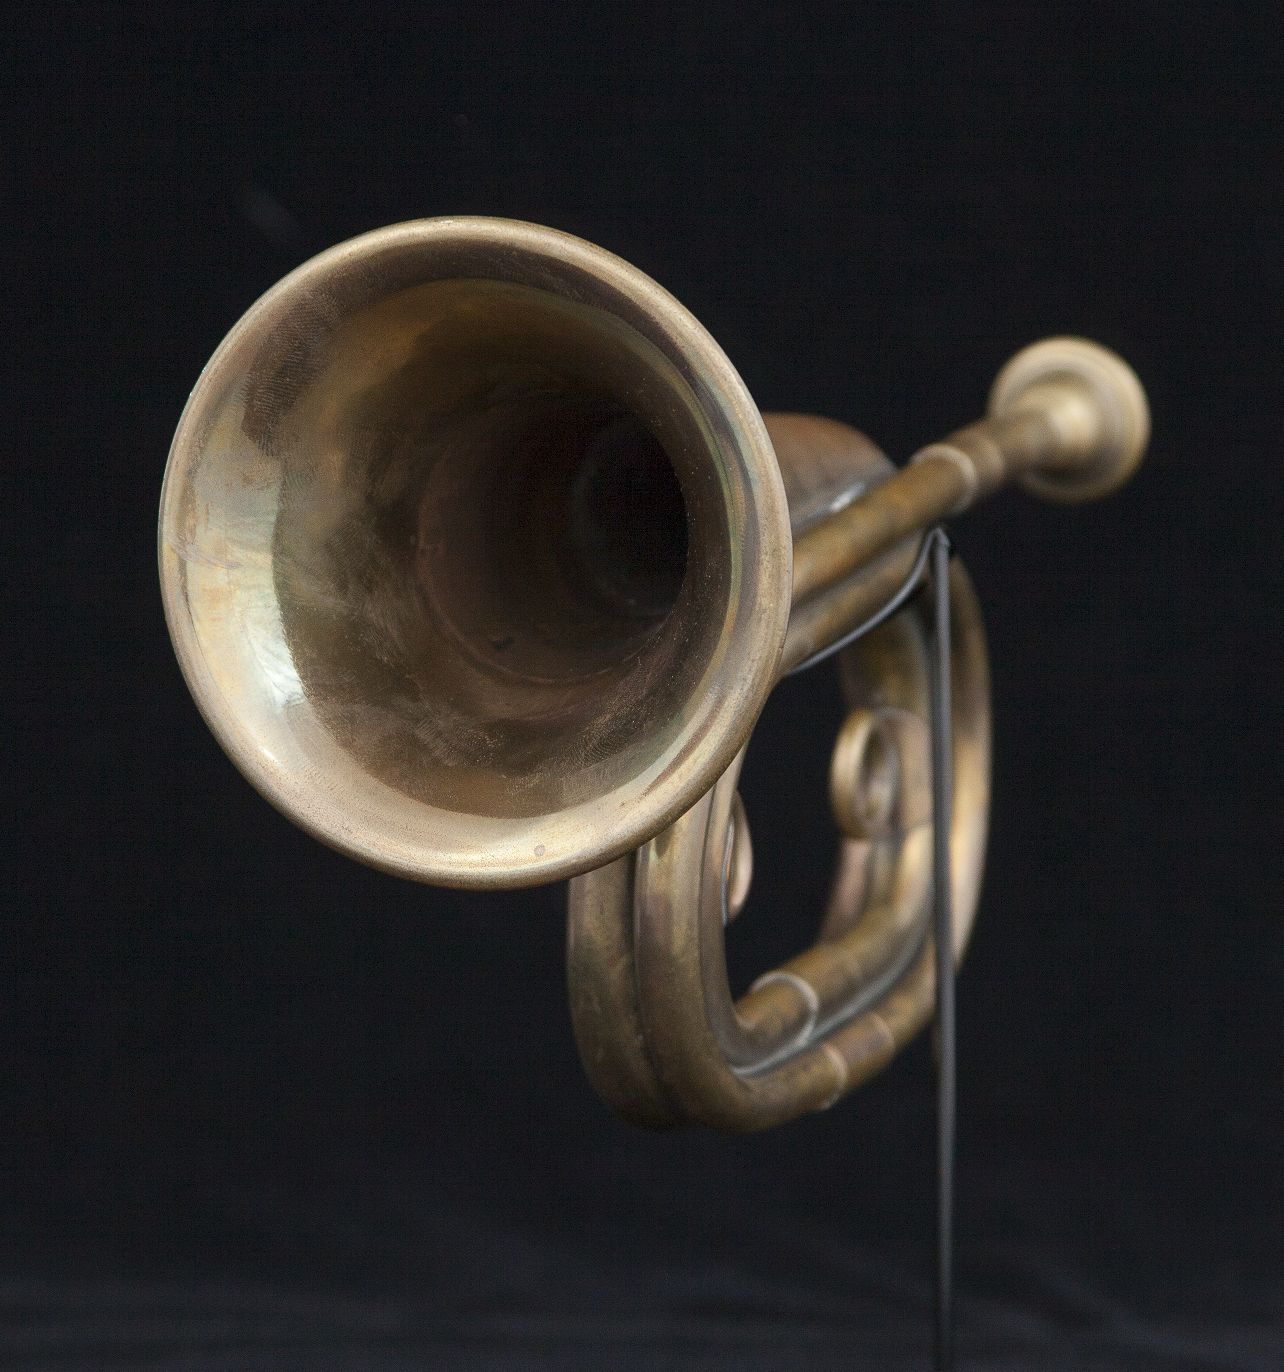 Frontal view of bugle against black background.